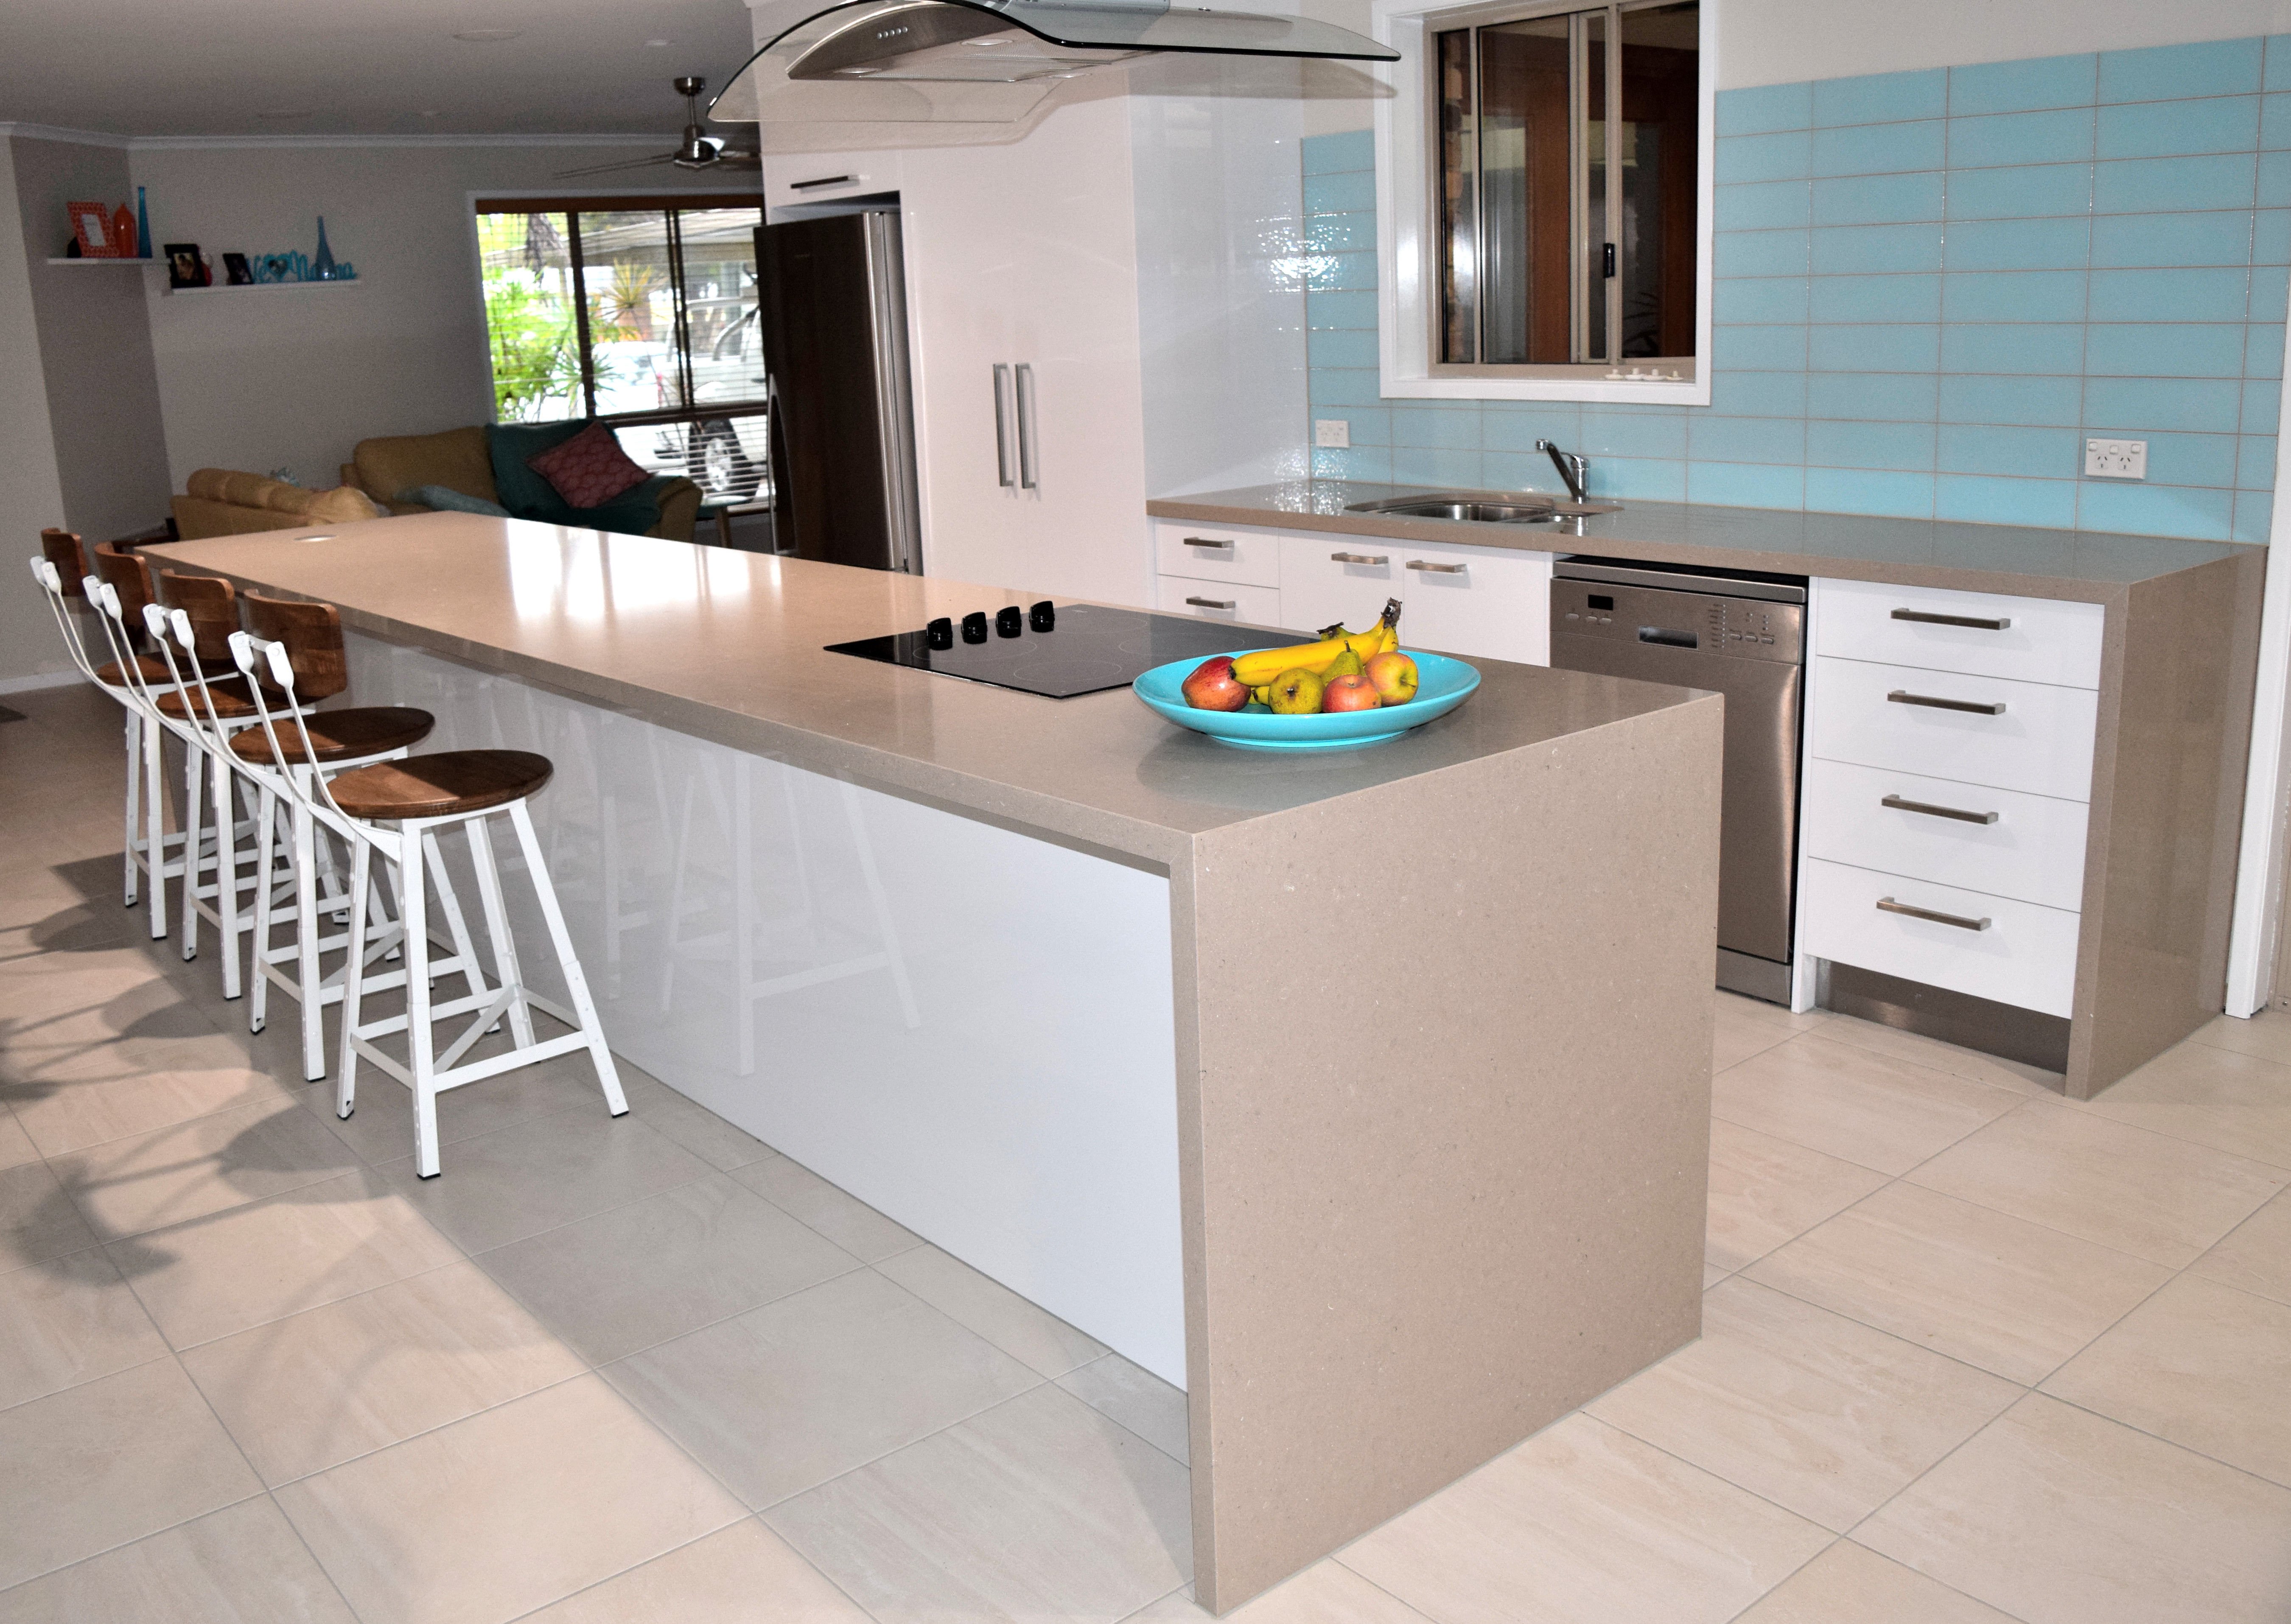 Instyle custom kitchens quality kitchens vanities and for Quality kitchens